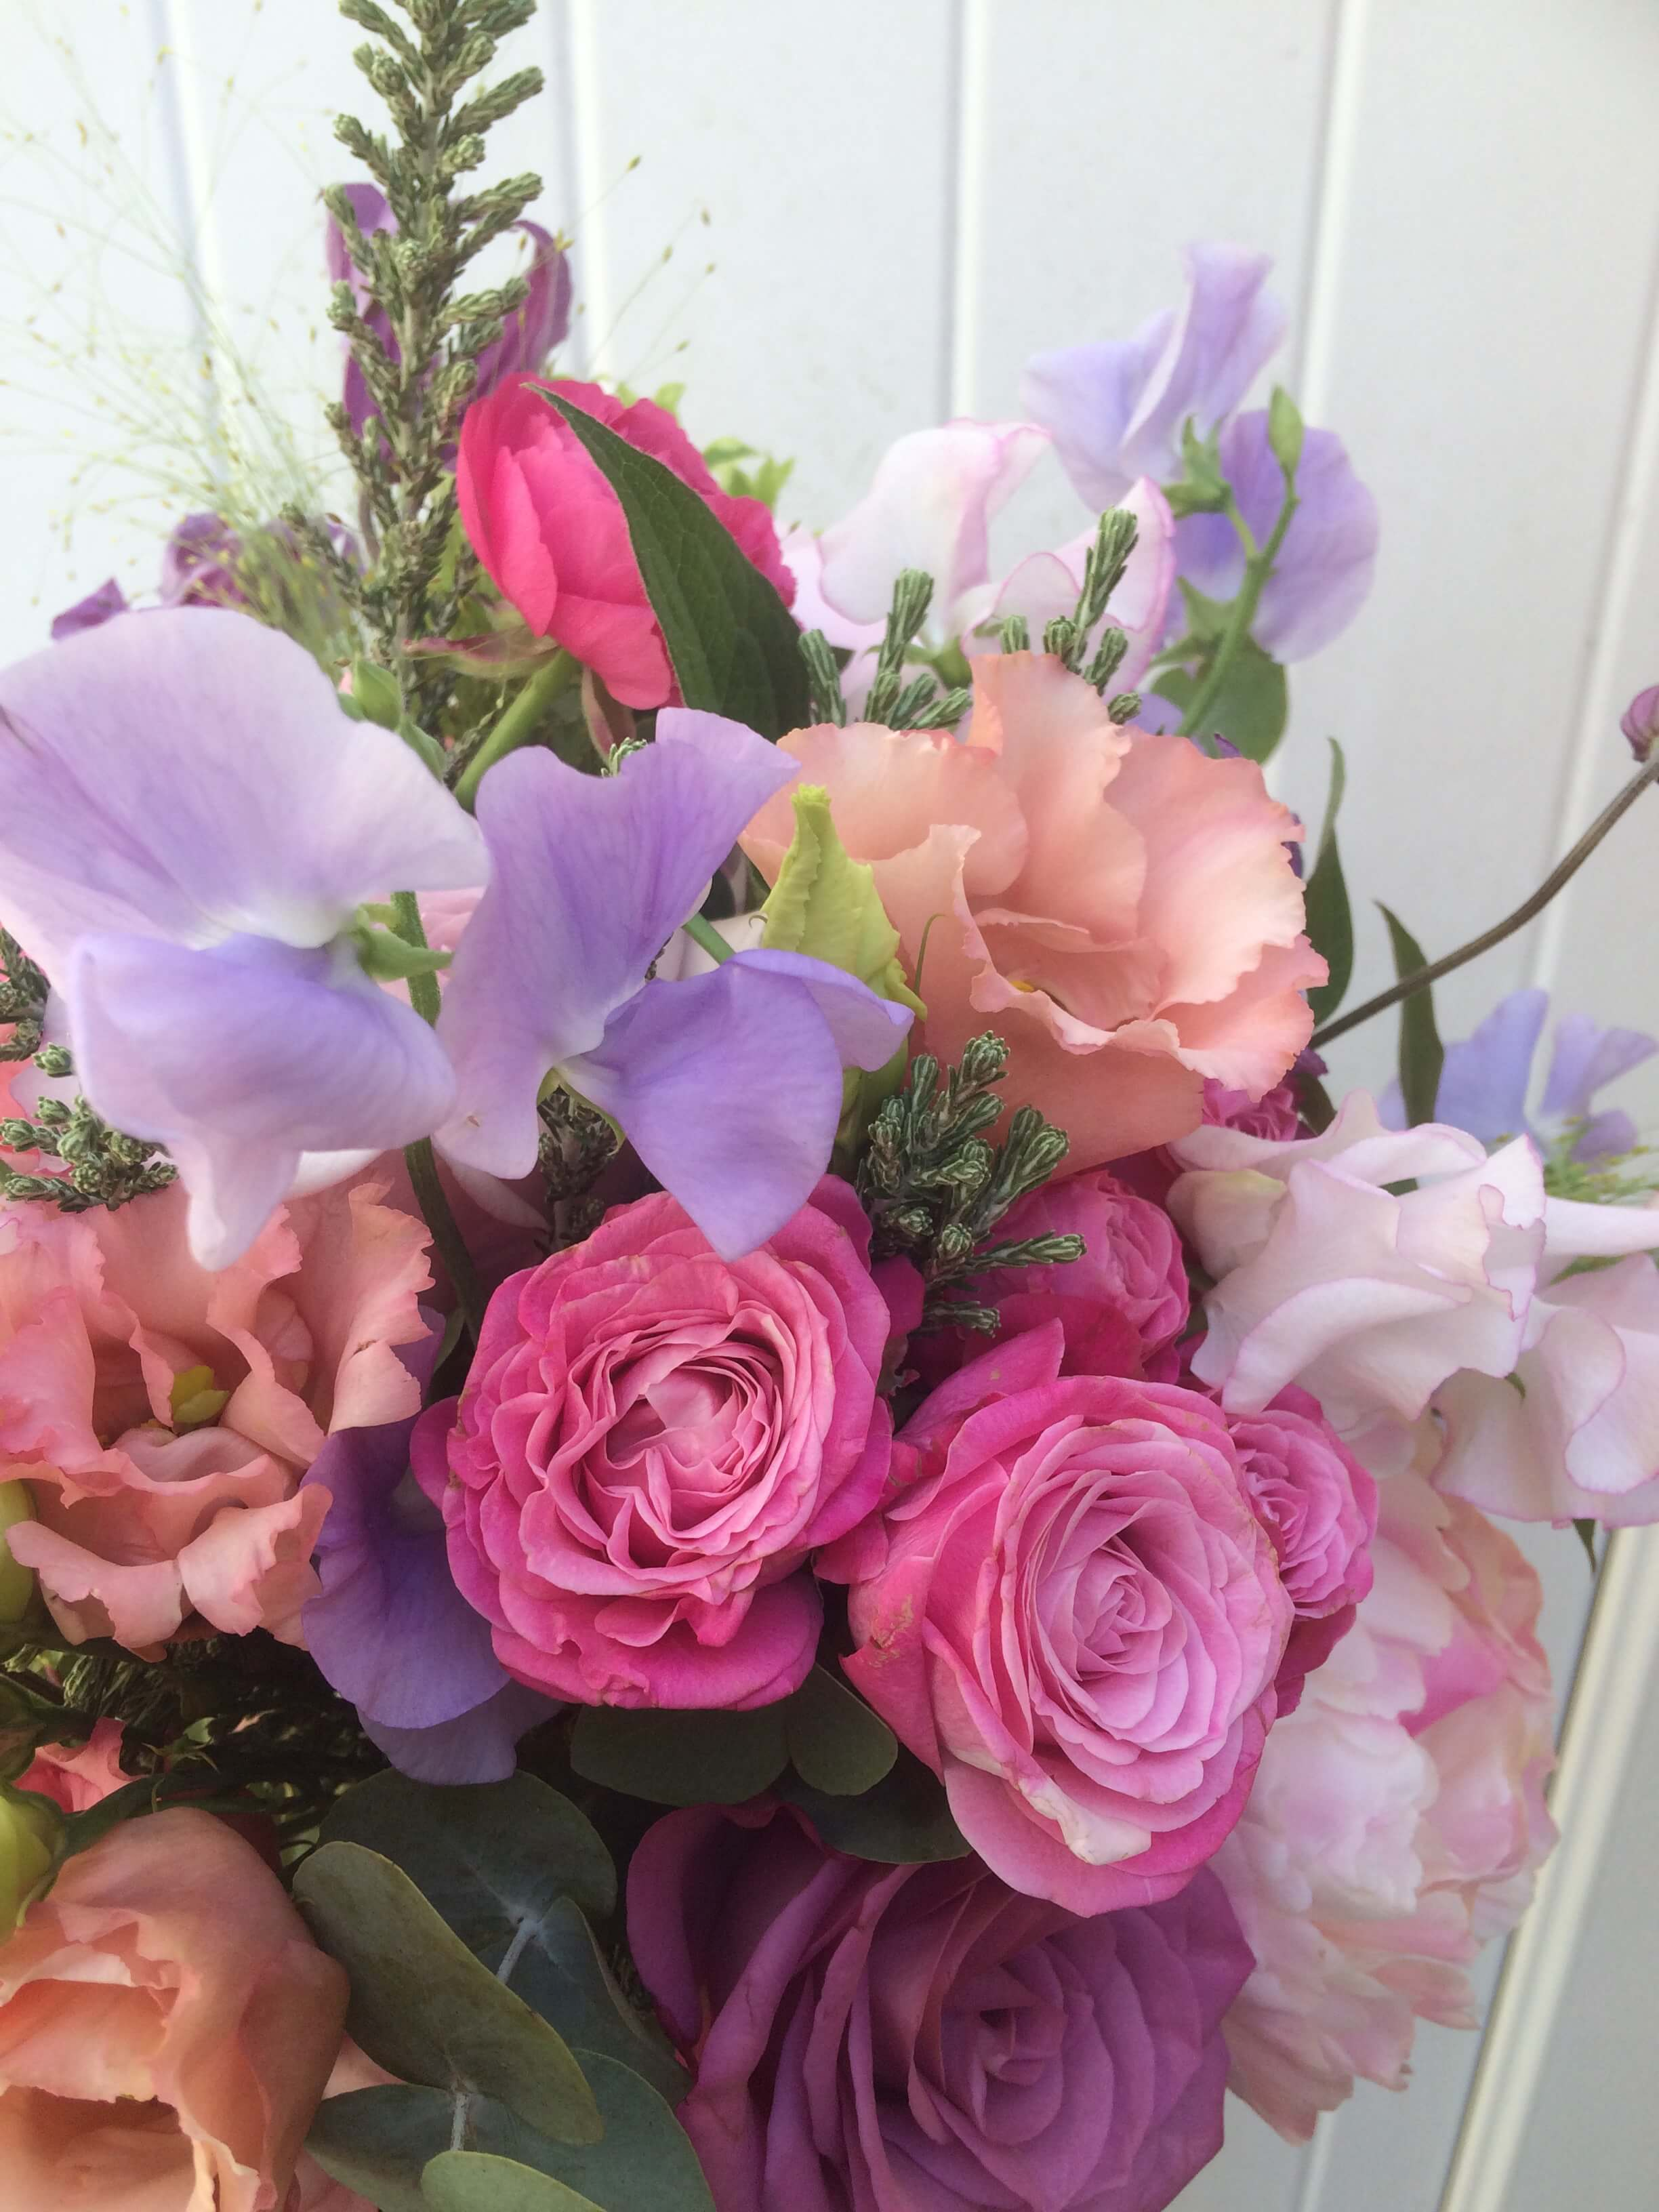 lilac sweet peas in bridal bouquet at Pangdean barn in Brighton